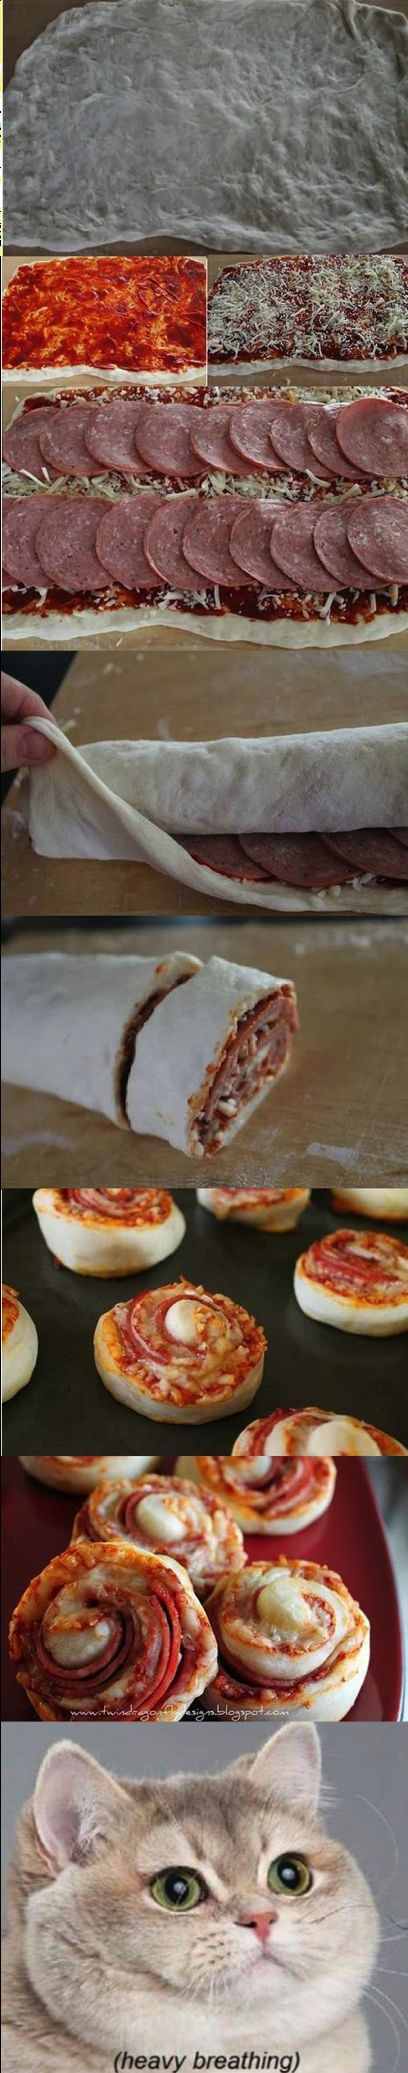 funny-picture-pizza-roll-heavy-breathing